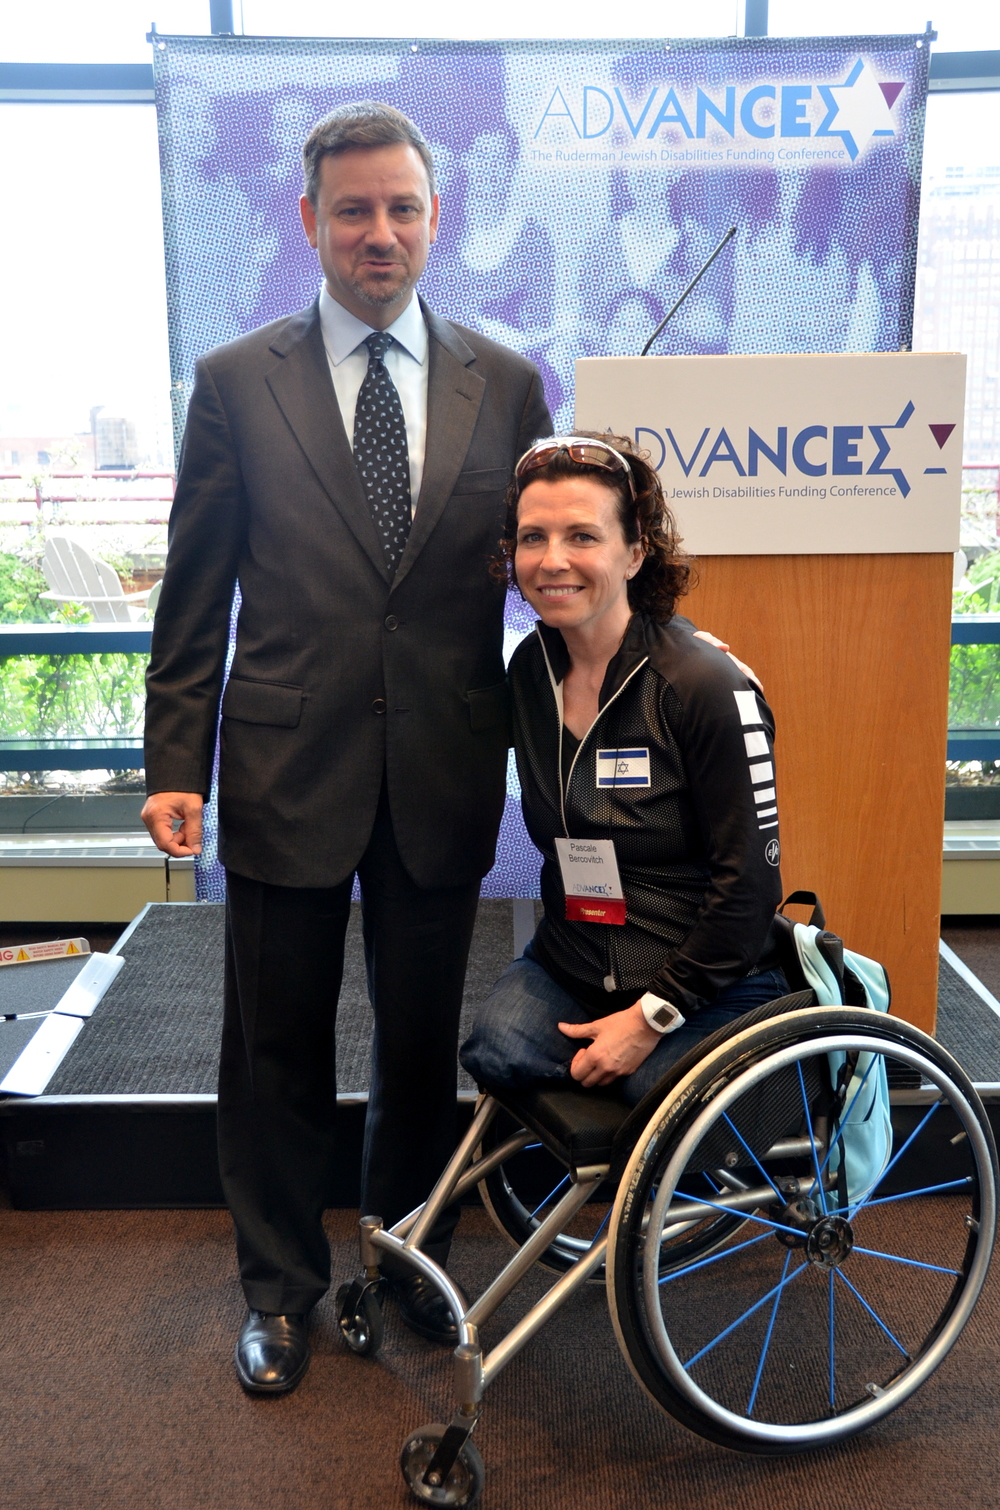 "Click photo to download. Caption: Jay Ruderman (left), president of the Ruderman Family Foundation, with Israeli Paralympic athlete Pascale Bercovitch on May 8 at ADVANCE: The Ruderman Jewish Disabilities Funding Conference, which focused on inclusion of people with disabilities in Jewish communal life. Credit: Maxine Dovere.                 0     0     1     9     52     JNS     1     1     60     14.0                            Normal     0                     false     false     false         EN-US     JA     X-NONE                                                                                                                                                                                                                                                                                                                                                                                                                                                                                                                                                                                                                                                                                                                            /* Style Definitions */ table.MsoNormalTable 	{mso-style-name:""Table Normal""; 	mso-tstyle-rowband-size:0; 	mso-tstyle-colband-size:0; 	mso-style-noshow:yes; 	mso-style-priority:99; 	mso-style-parent:""""; 	mso-padding-alt:0in 5.4pt 0in 5.4pt; 	mso-para-margin:0in; 	mso-para-margin-bottom:.0001pt; 	mso-pagination:widow-orphan; 	font-size:12.0pt; 	font-family:Cambria; 	mso-ascii-font-family:Cambria; 	mso-ascii-theme-font:minor-latin; 	mso-hansi-font-family:Cambria; 	mso-hansi-theme-font:minor-latin;}                              0     0     1     9     49     JNS     1     1     57     14.0                            Normal     0                     false     false     false         EN-US     JA     X-NONE                                                                                                                                                                                                                                                                                                                                                                                                                                                                                                                                                                                                                                                                                                                            /* Style Definitions */ table.MsoNormalTable 	{mso-style-name:""Table Normal""; 	mso-tstyle-rowband-size:0; 	mso-tstyle-colband-size:0; 	mso-style-noshow:yes; 	mso-style-priority:99; 	mso-style-parent:""""; 	mso-padding-alt:0in 5.4pt 0in 5.4pt; 	mso-para-margin:0in; 	mso-para-margin-bottom:.0001pt; 	mso-pagination:widow-orphan; 	font-size:12.0pt; 	font-family:Cambria; 	mso-ascii-font-family:Cambria; 	mso-ascii-theme-font:minor-latin; 	mso-hansi-font-family:Cambria; 	mso-hansi-theme-font:minor-latin;}                              0     0     1     10     54     JNS     1     1     63     14.0                            Normal     0                     false     false     false         EN-US     JA     X-NONE                                                                                                                                                                                                                                                                                                                                                                                                                                                                                                                                                                                                                                                                                                                            /* Style Definitions */ table.MsoNormalTable 	{mso-style-name:""Table Normal""; 	mso-tstyle-rowband-size:0; 	mso-tstyle-colband-size:0; 	mso-style-noshow:yes; 	mso-style-priority:99; 	mso-style-parent:""""; 	mso-padding-alt:0in 5.4pt 0in 5.4pt; 	mso-para-margin:0in; 	mso-para-margin-bottom:.0001pt; 	mso-pagination:widow-orphan; 	font-size:12.0pt; 	font-family:Cambria; 	mso-ascii-font-family:Cambria; 	mso-ascii-theme-font:minor-latin; 	mso-hansi-font-family:Cambria; 	mso-hansi-theme-font:minor-latin;}"